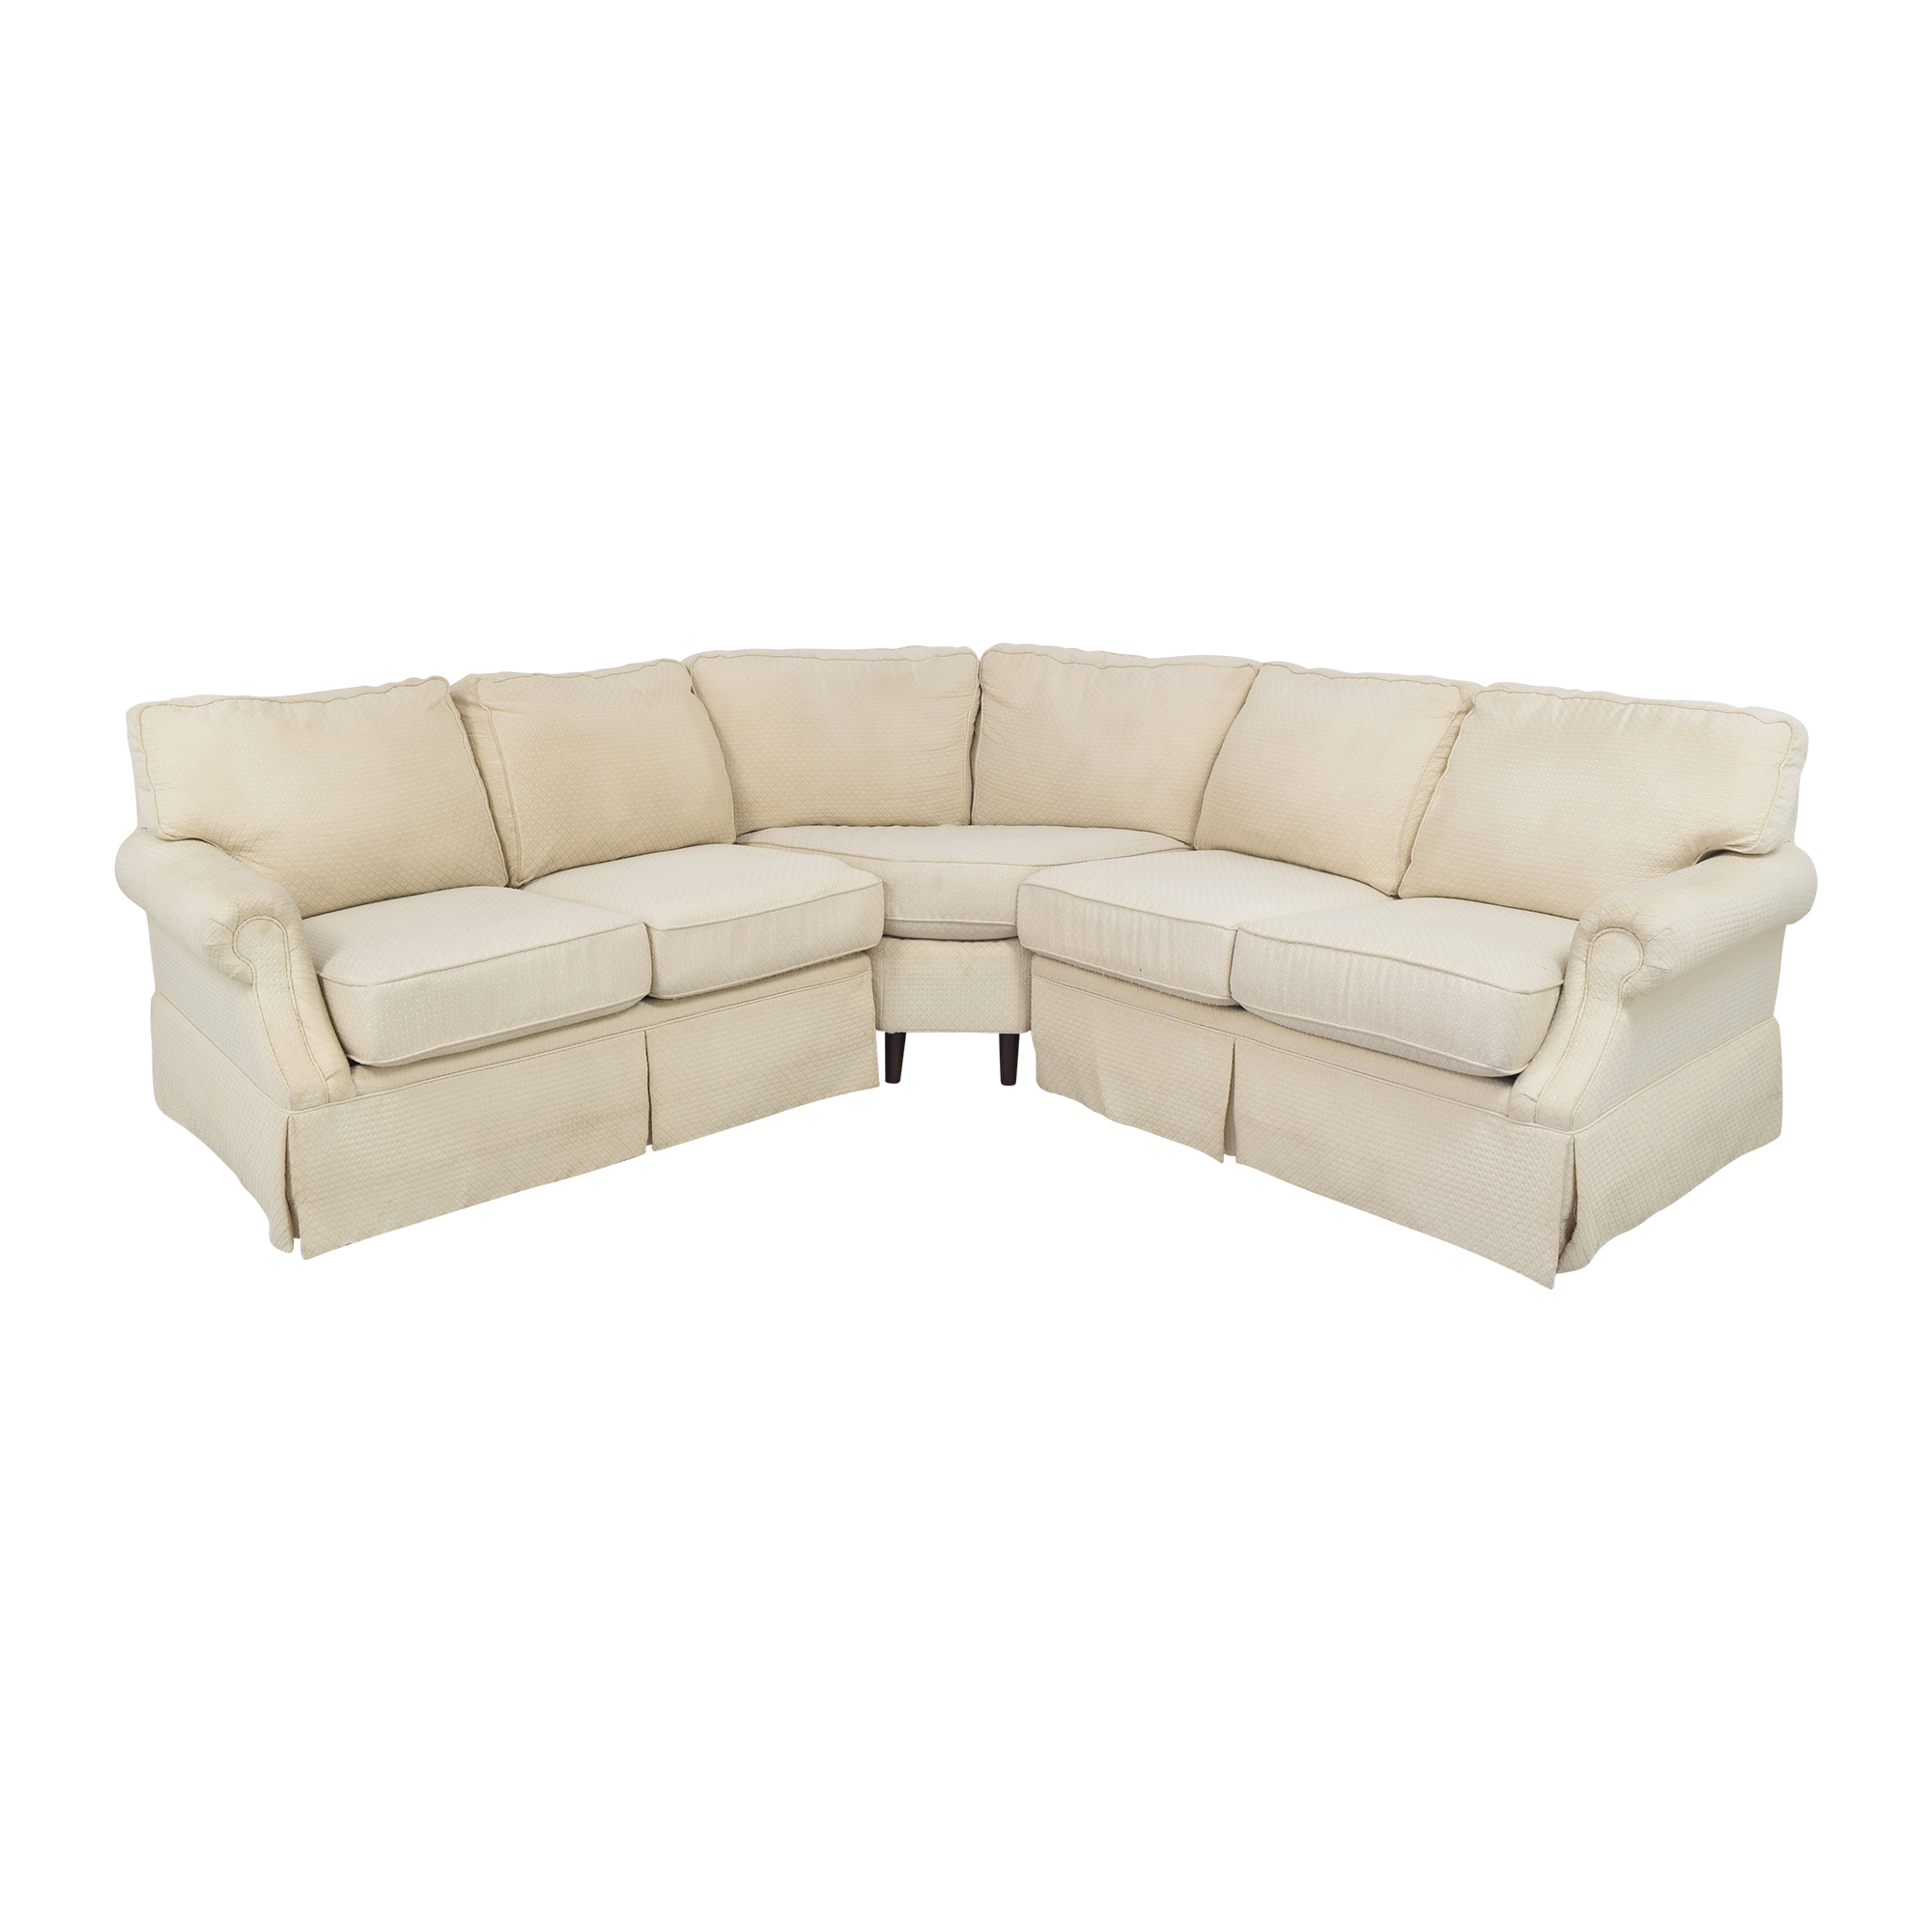 Flexsteel Flexsteel L Shaped Sectional Sofa pa